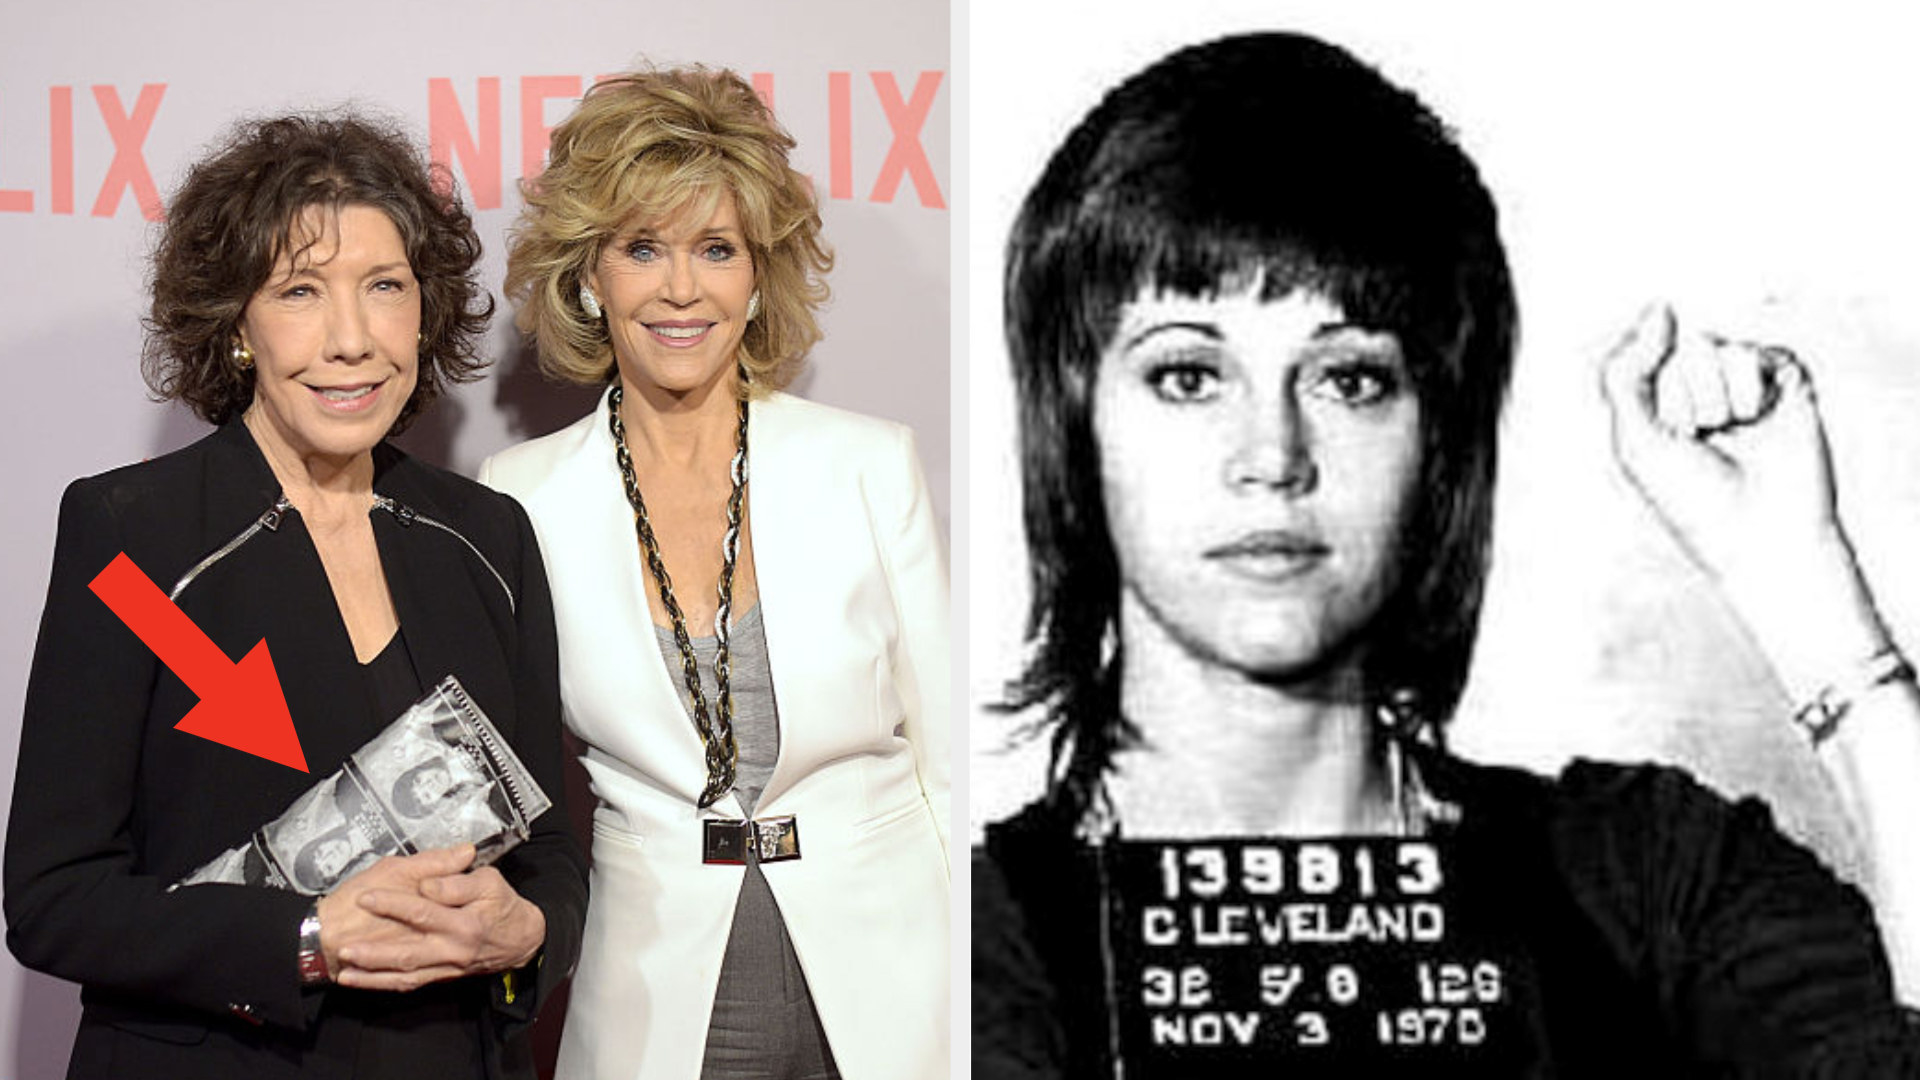 Lily Tomlin and Jane Fonda at a red carpet event, with Lily holding a clutch with Jane Fonda's mugshot on it; Jane Fonda raising her fist in her 1970 mugshot